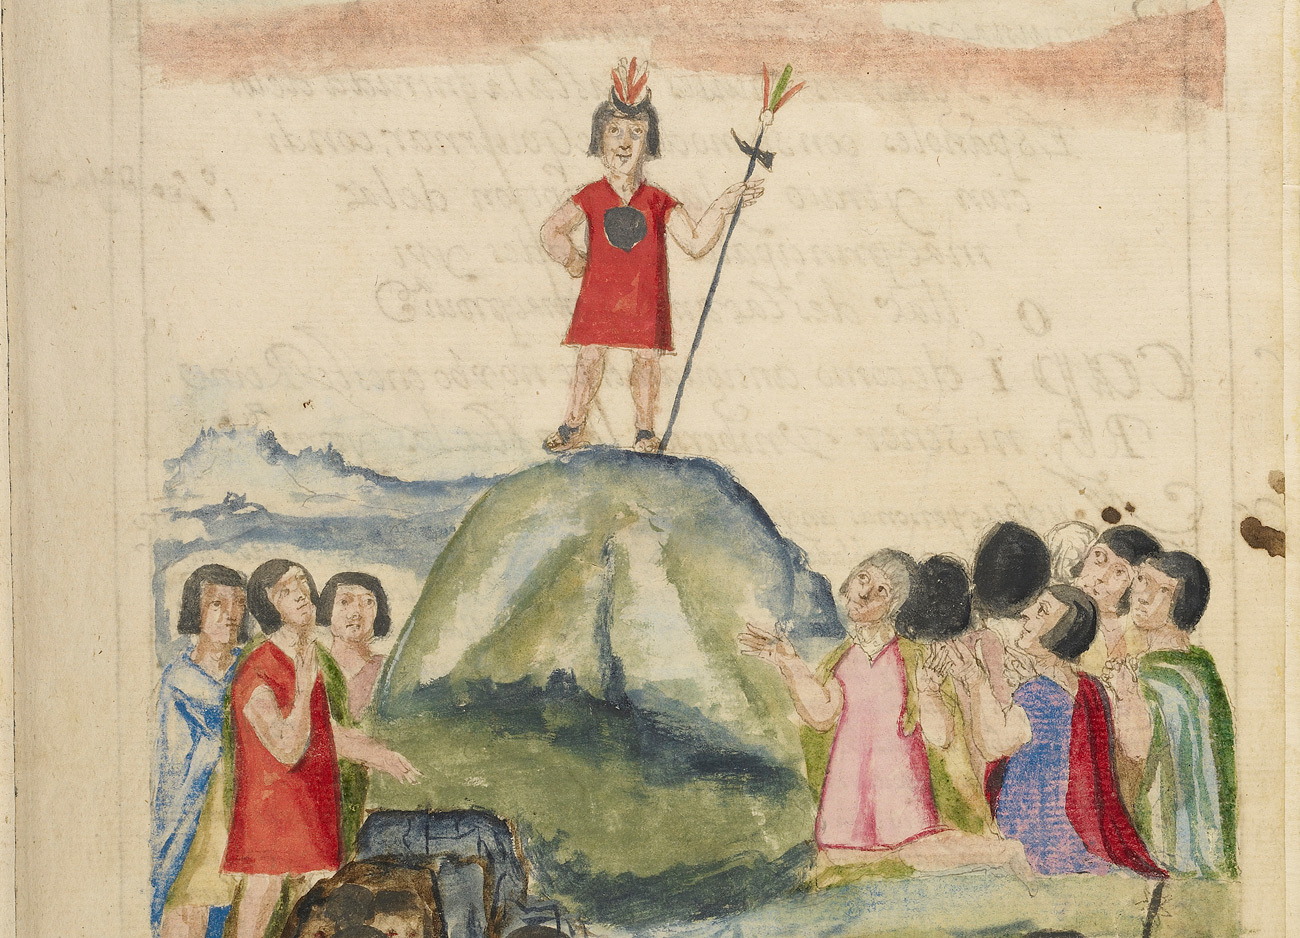 A man in red stands atop a small hill as people below look up to him